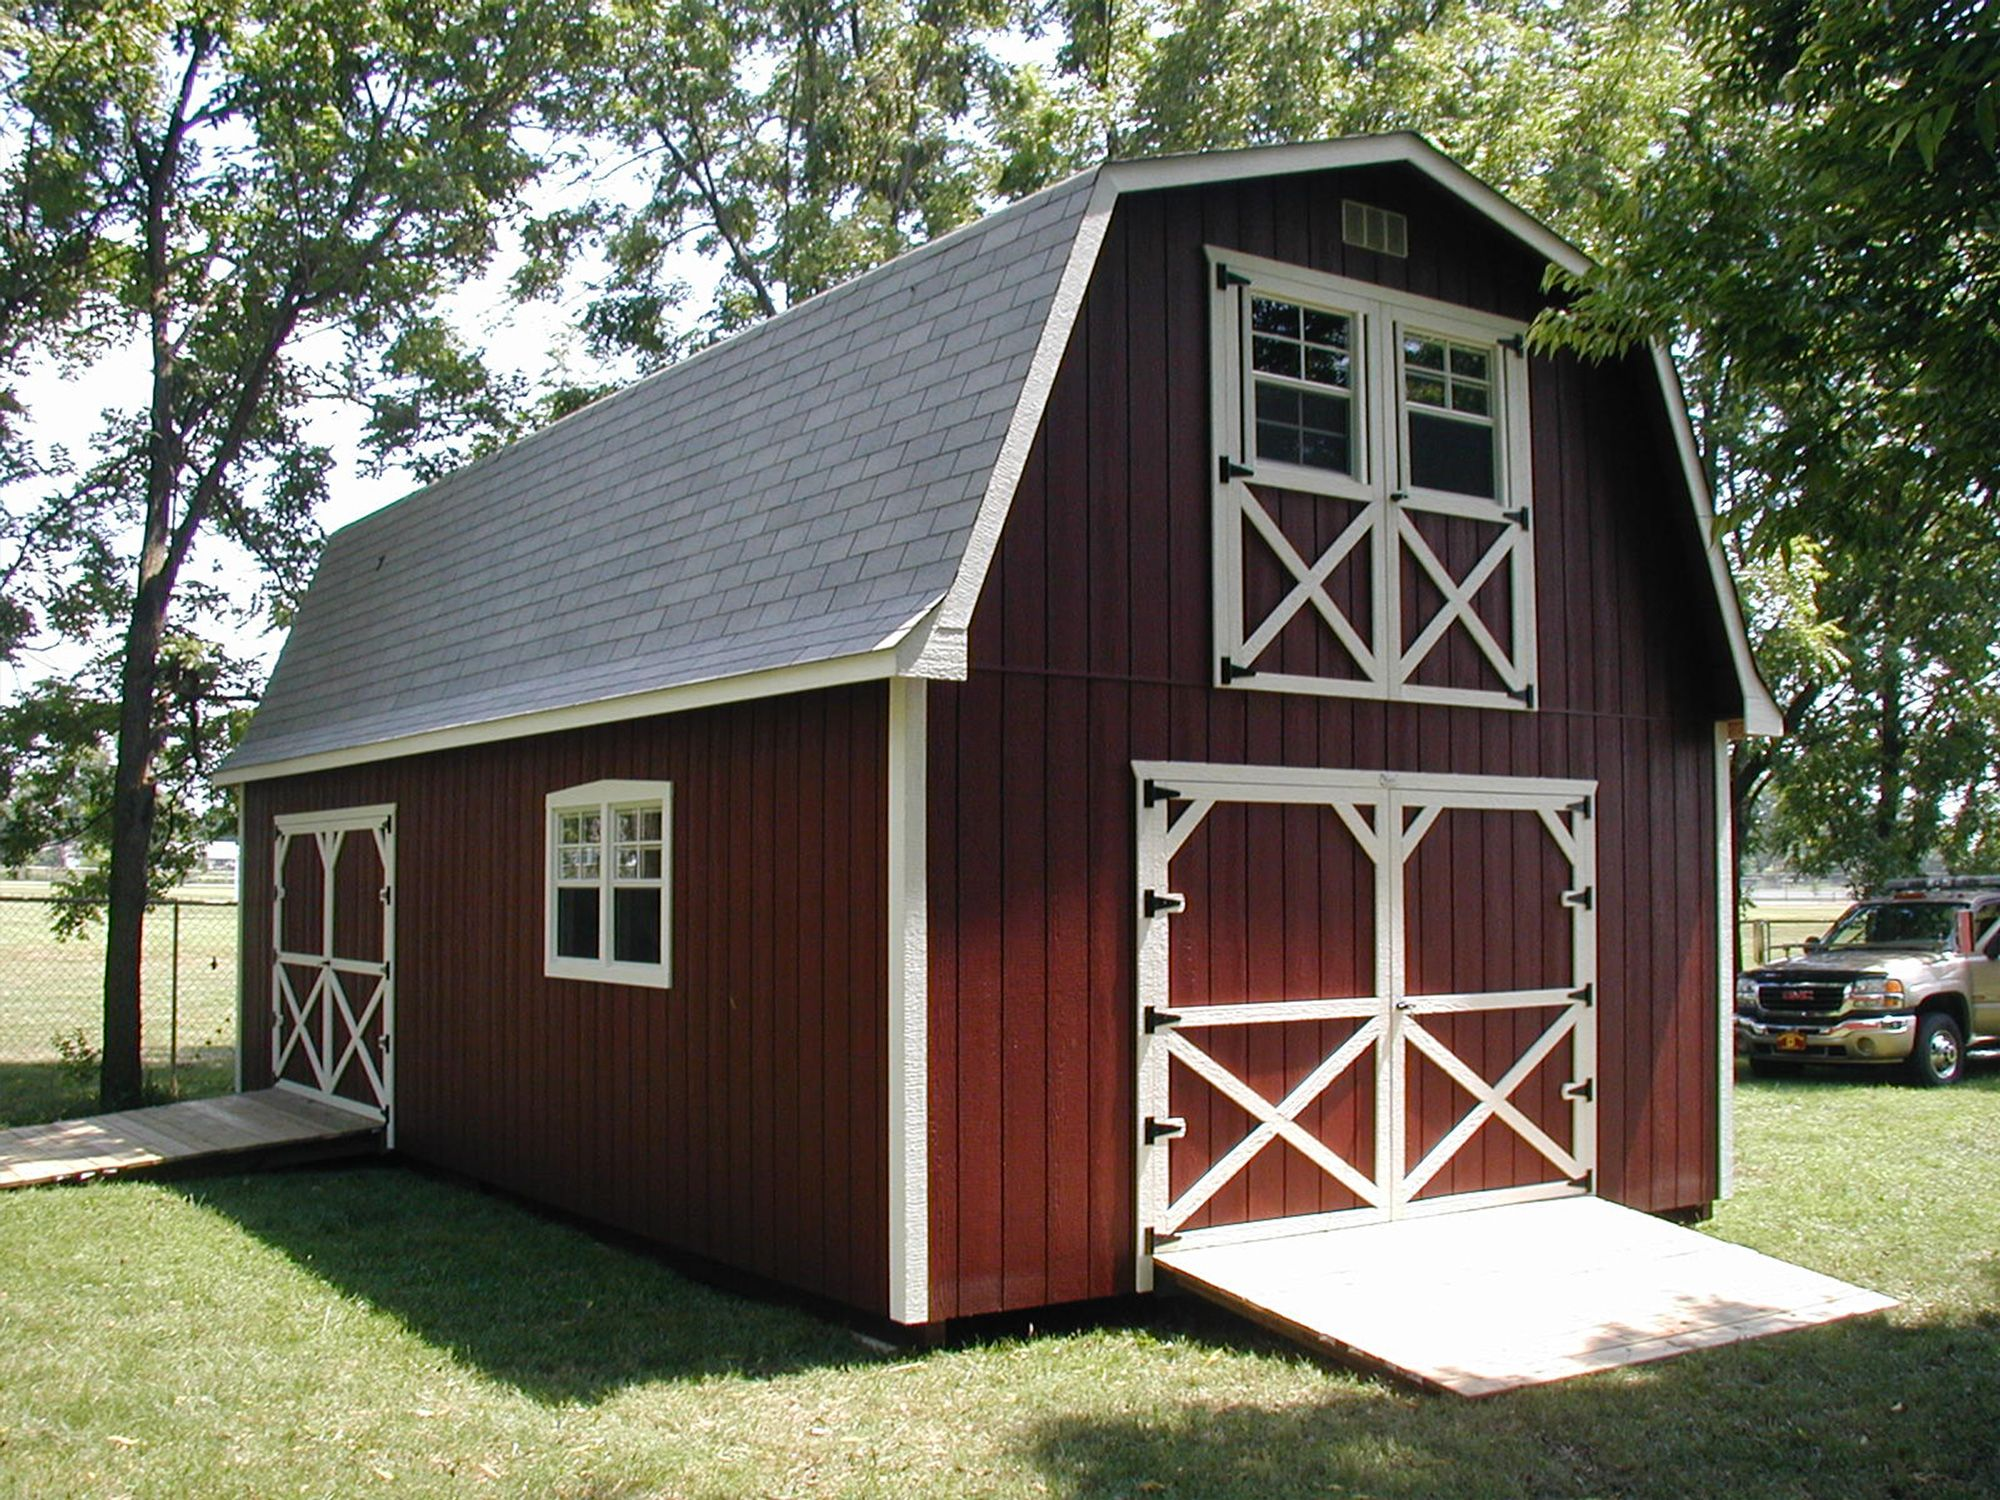 A red two story storage building shed to tiny house